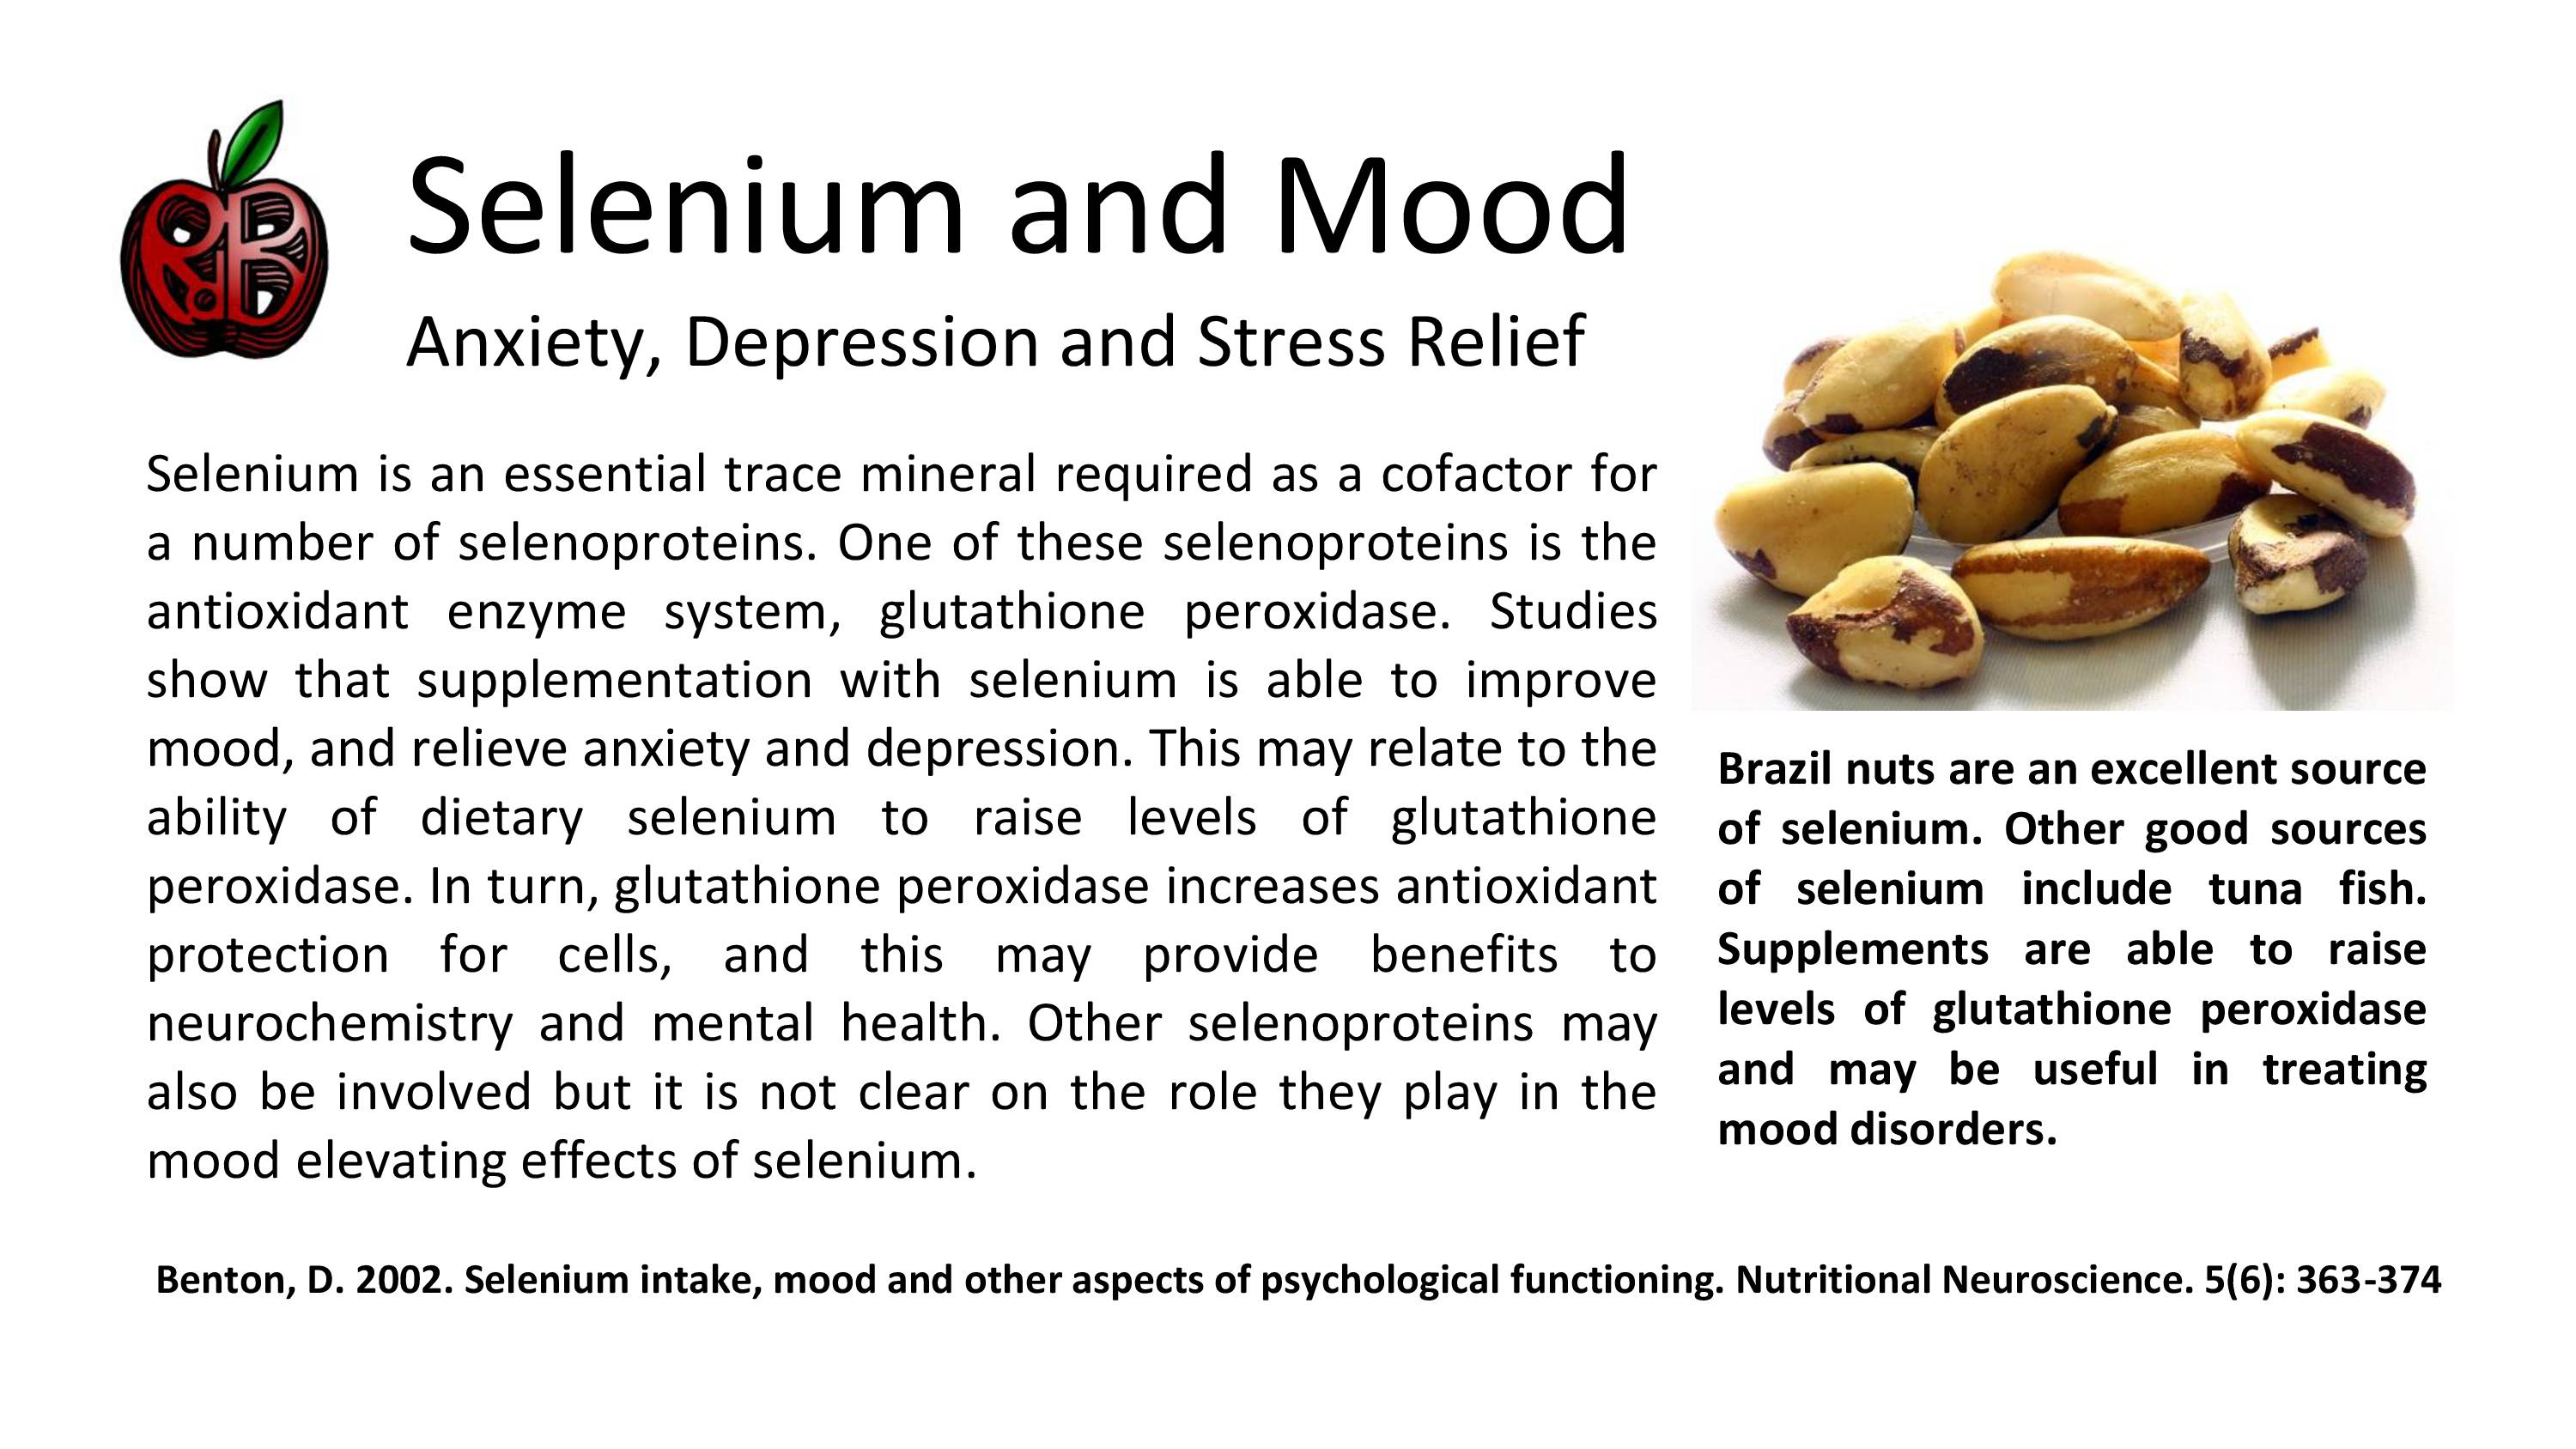 selenium mood anxiety depression